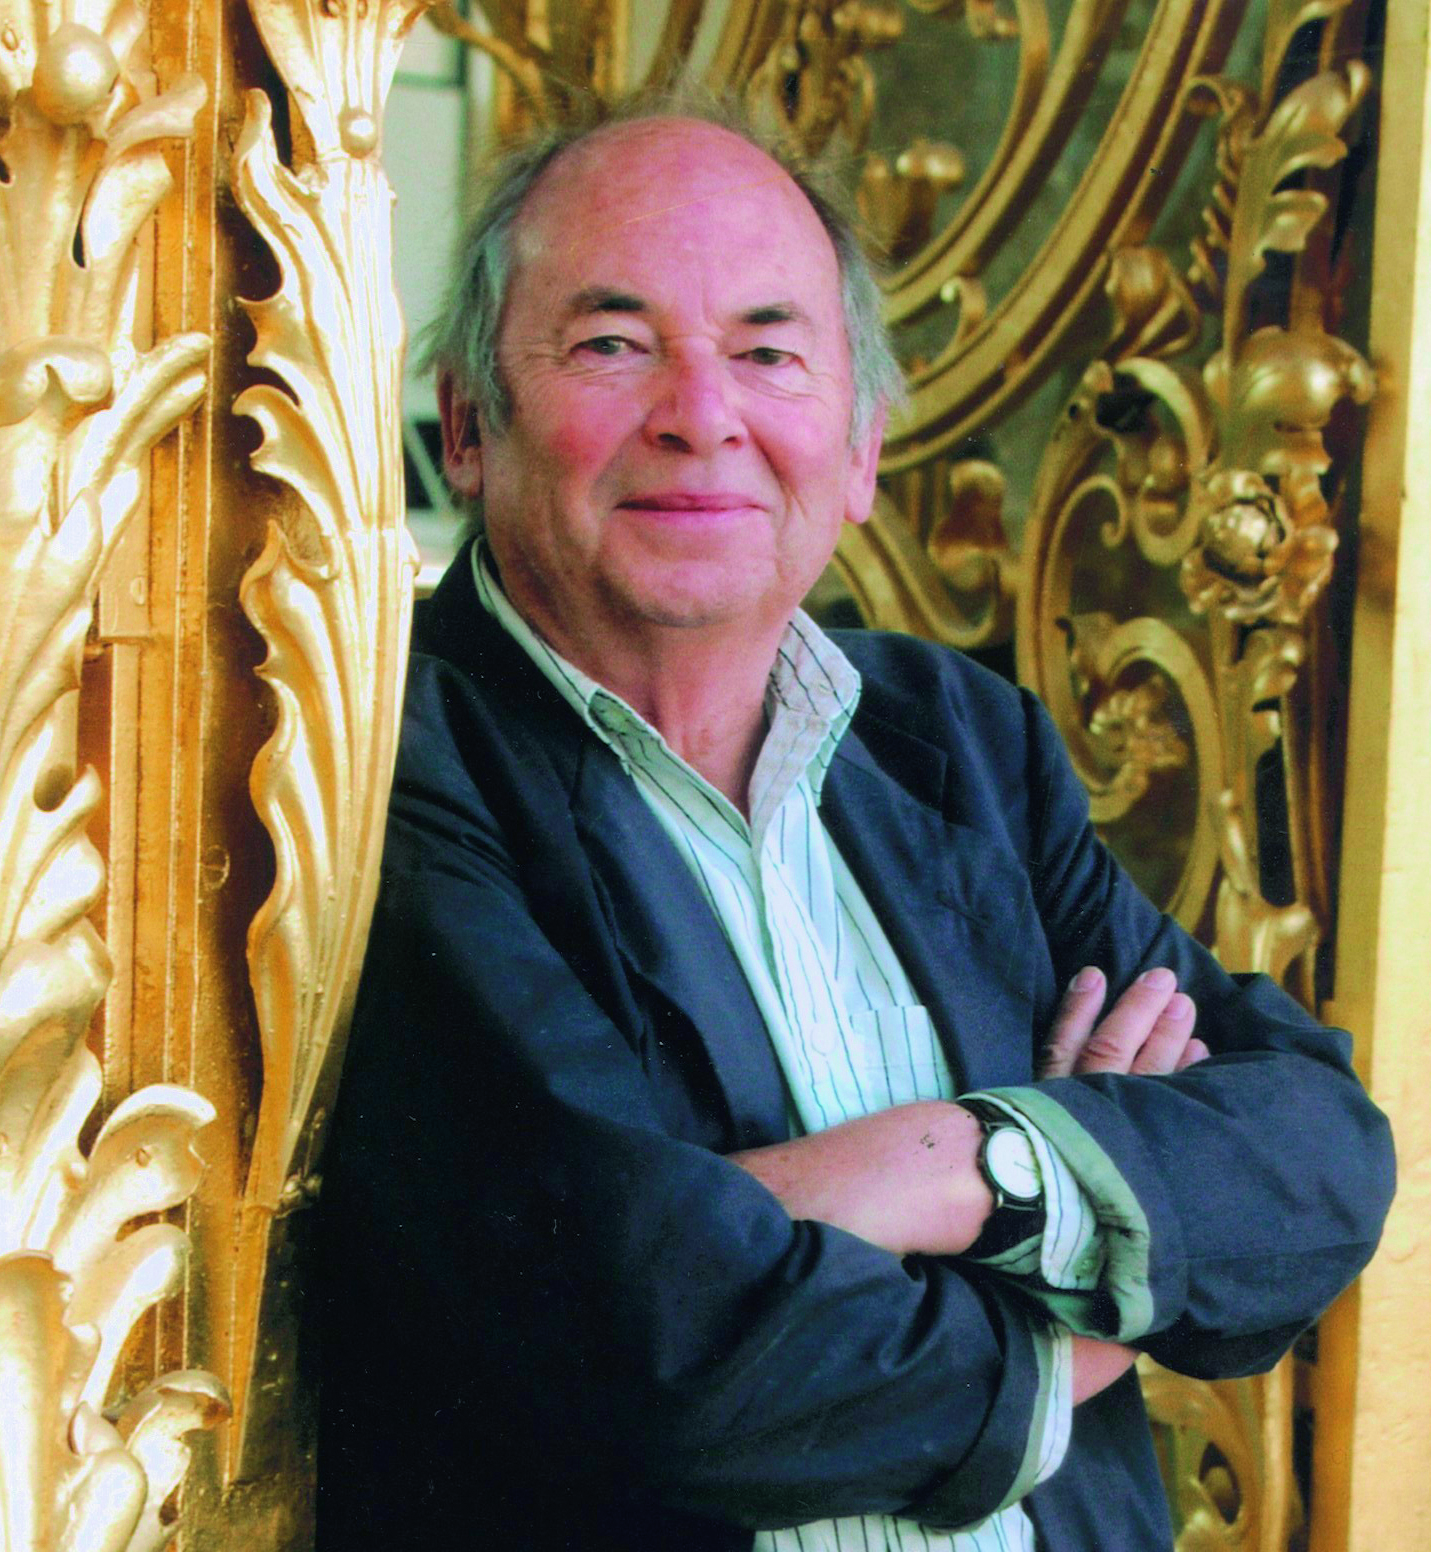 Sir Quentin Blake, Patron of Hastings Storytelling Festival